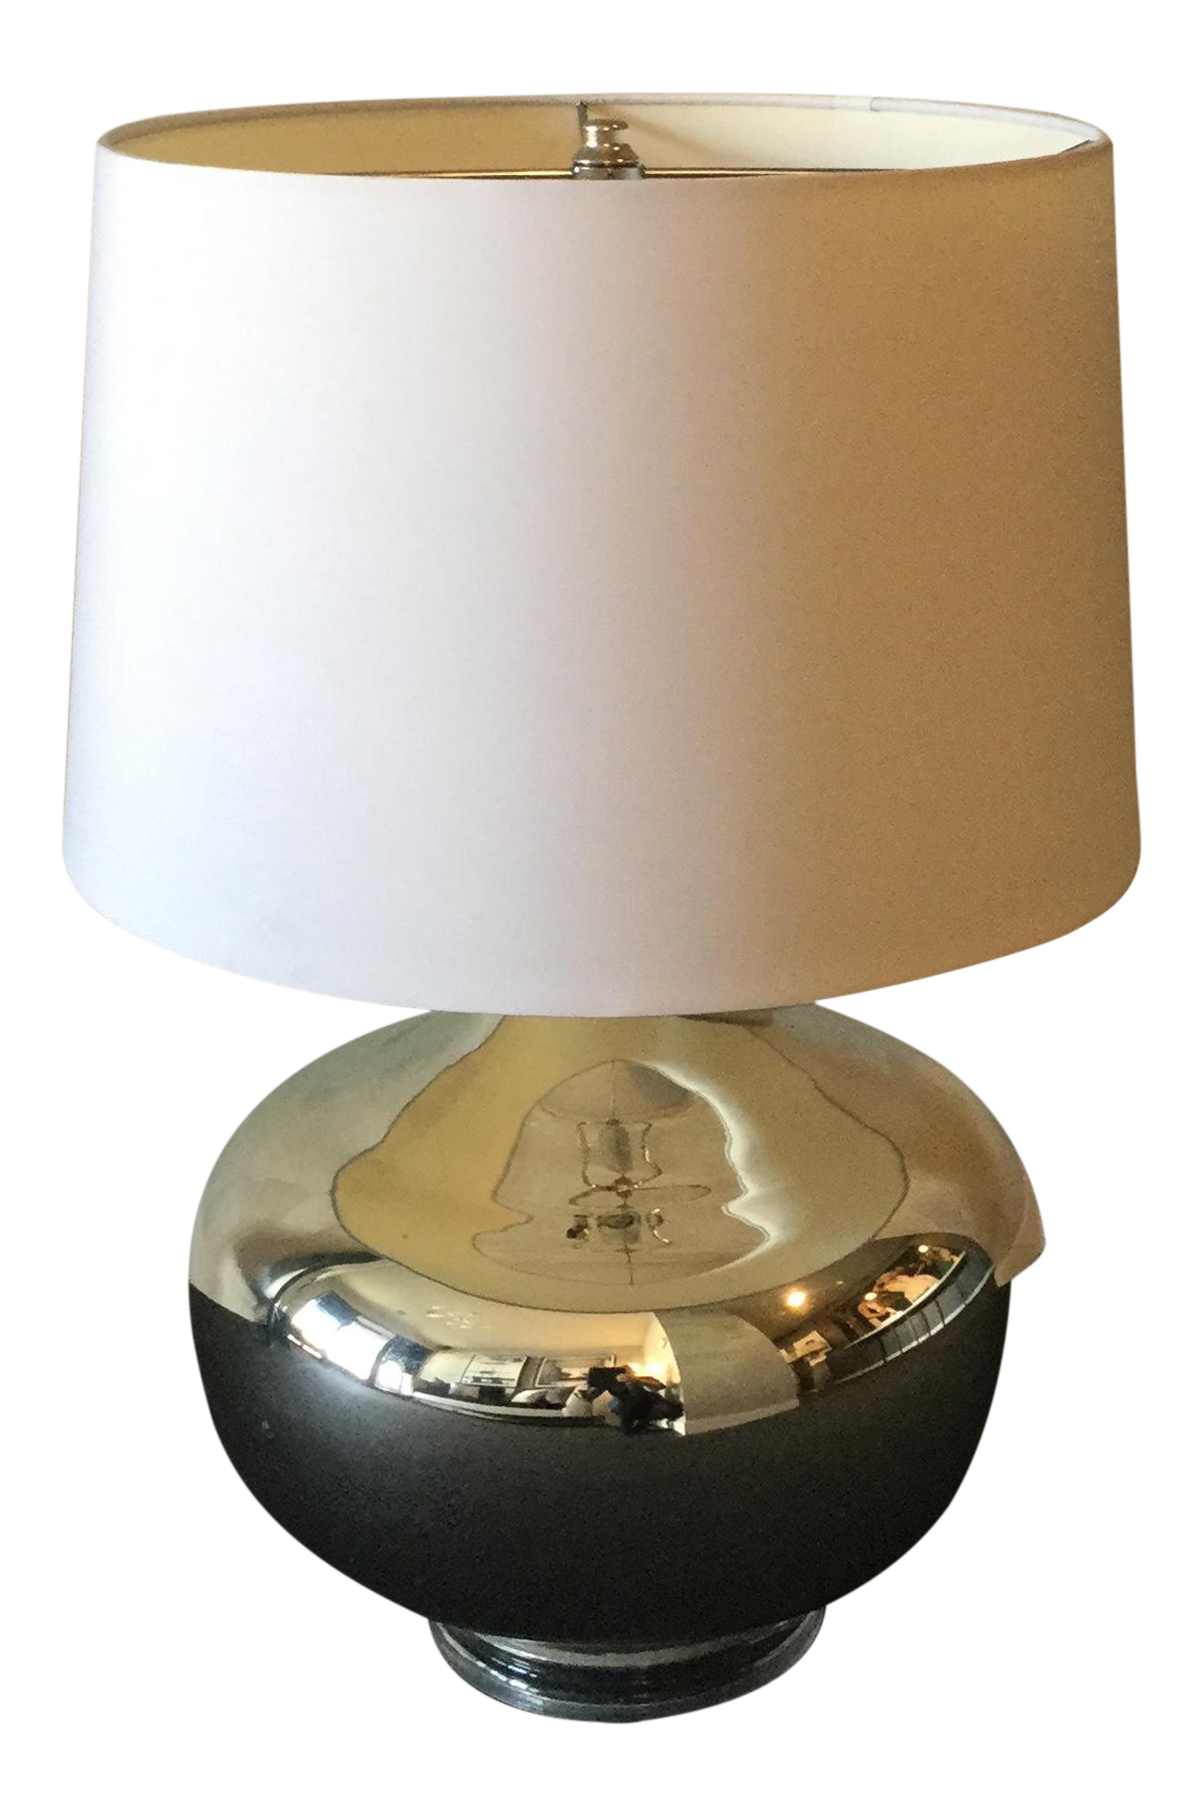 Crate and barrel liza table lamp chairish for Kitchen cabinets lowes with crate and barrel wall art sale